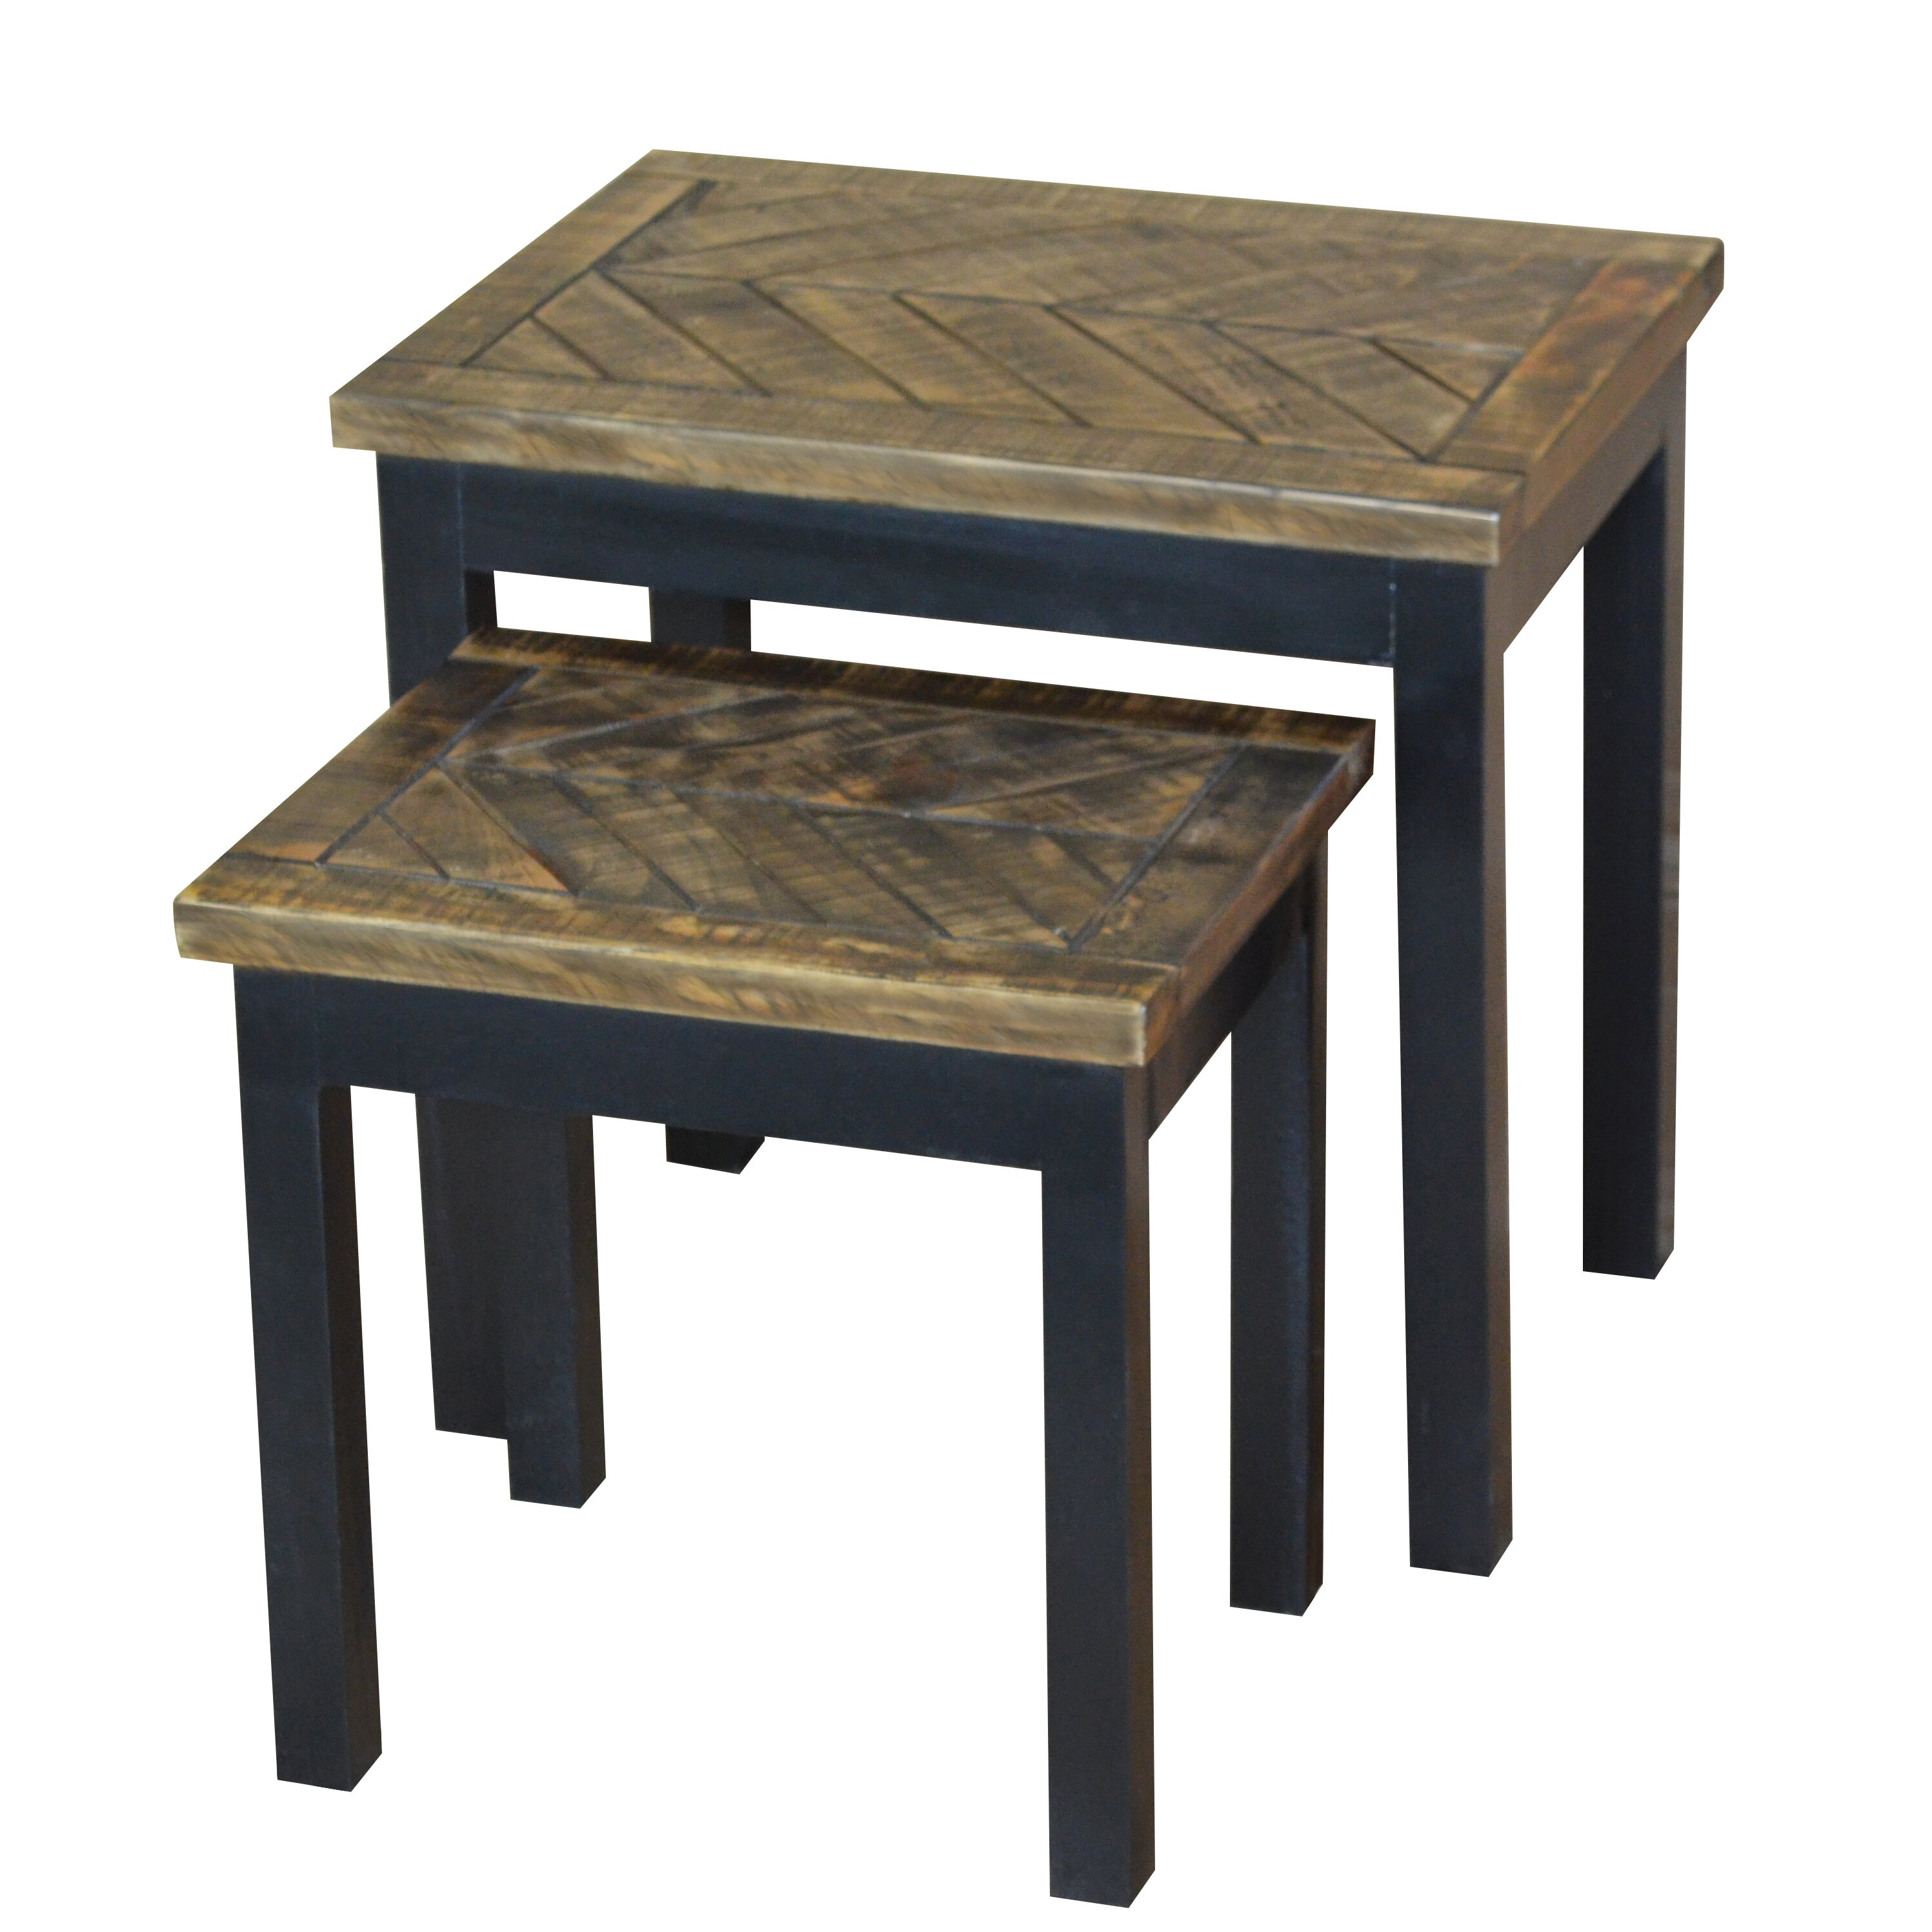 Gallerie Decor Wovenwood 2 Piece Nesting Tables & Reviews Wayfair. Full resolution  portraiture, nominally Width 2994 Height 2994 pixels, portraiture with #806E4B.